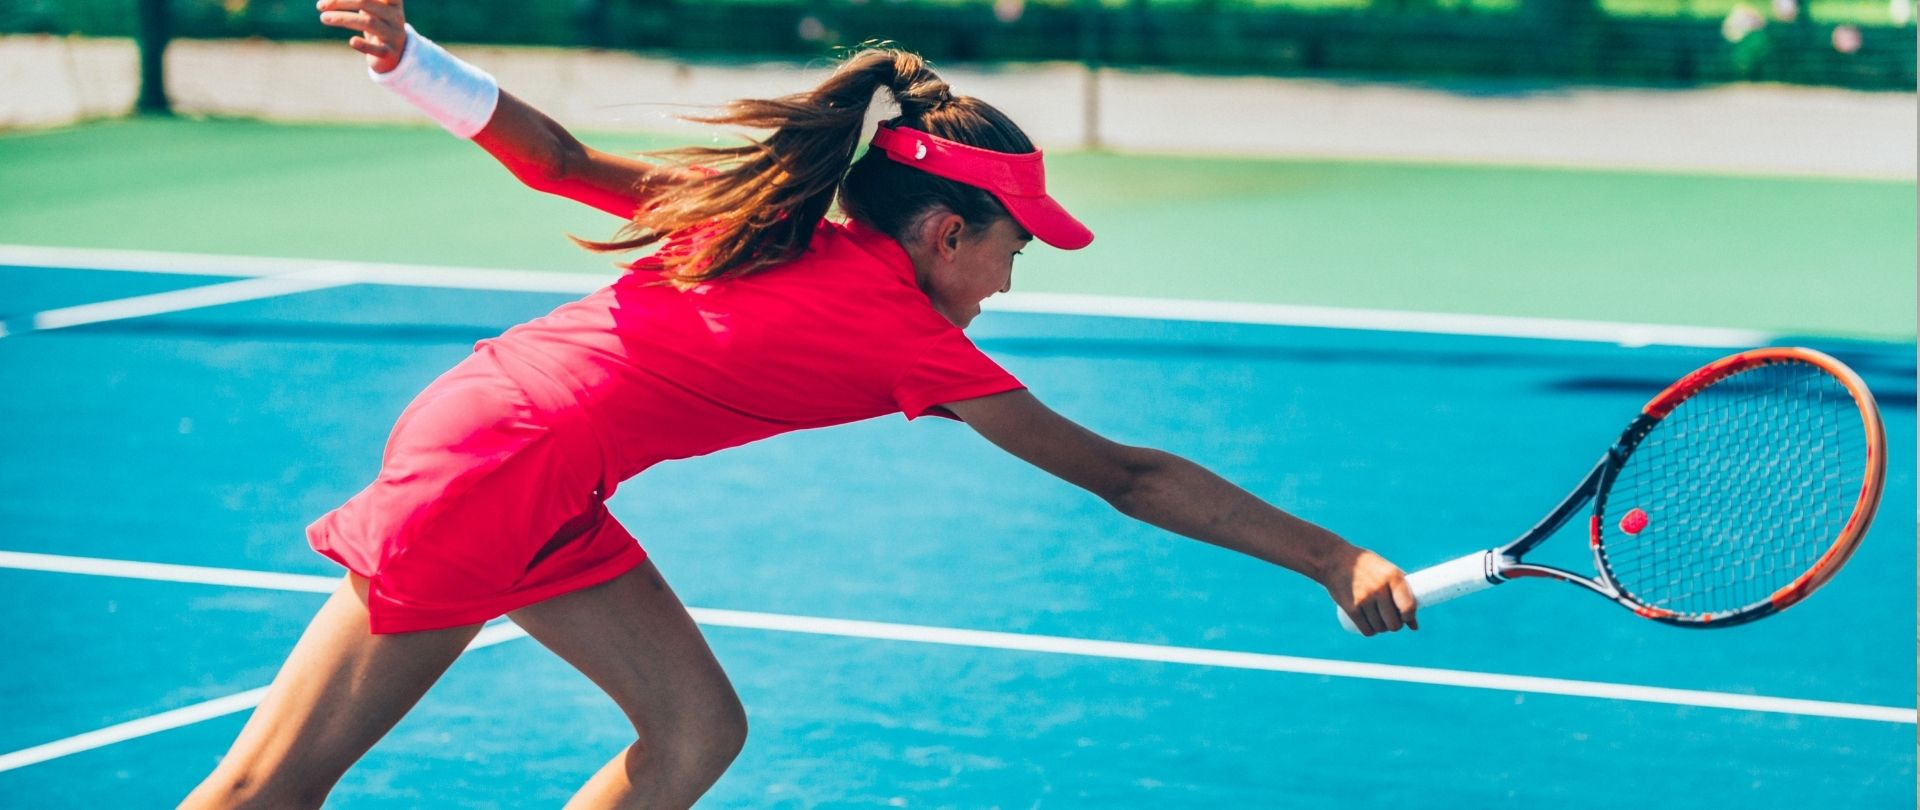 Tennis 1920x810 1 - How This Tennis Player Just Upped Her Game